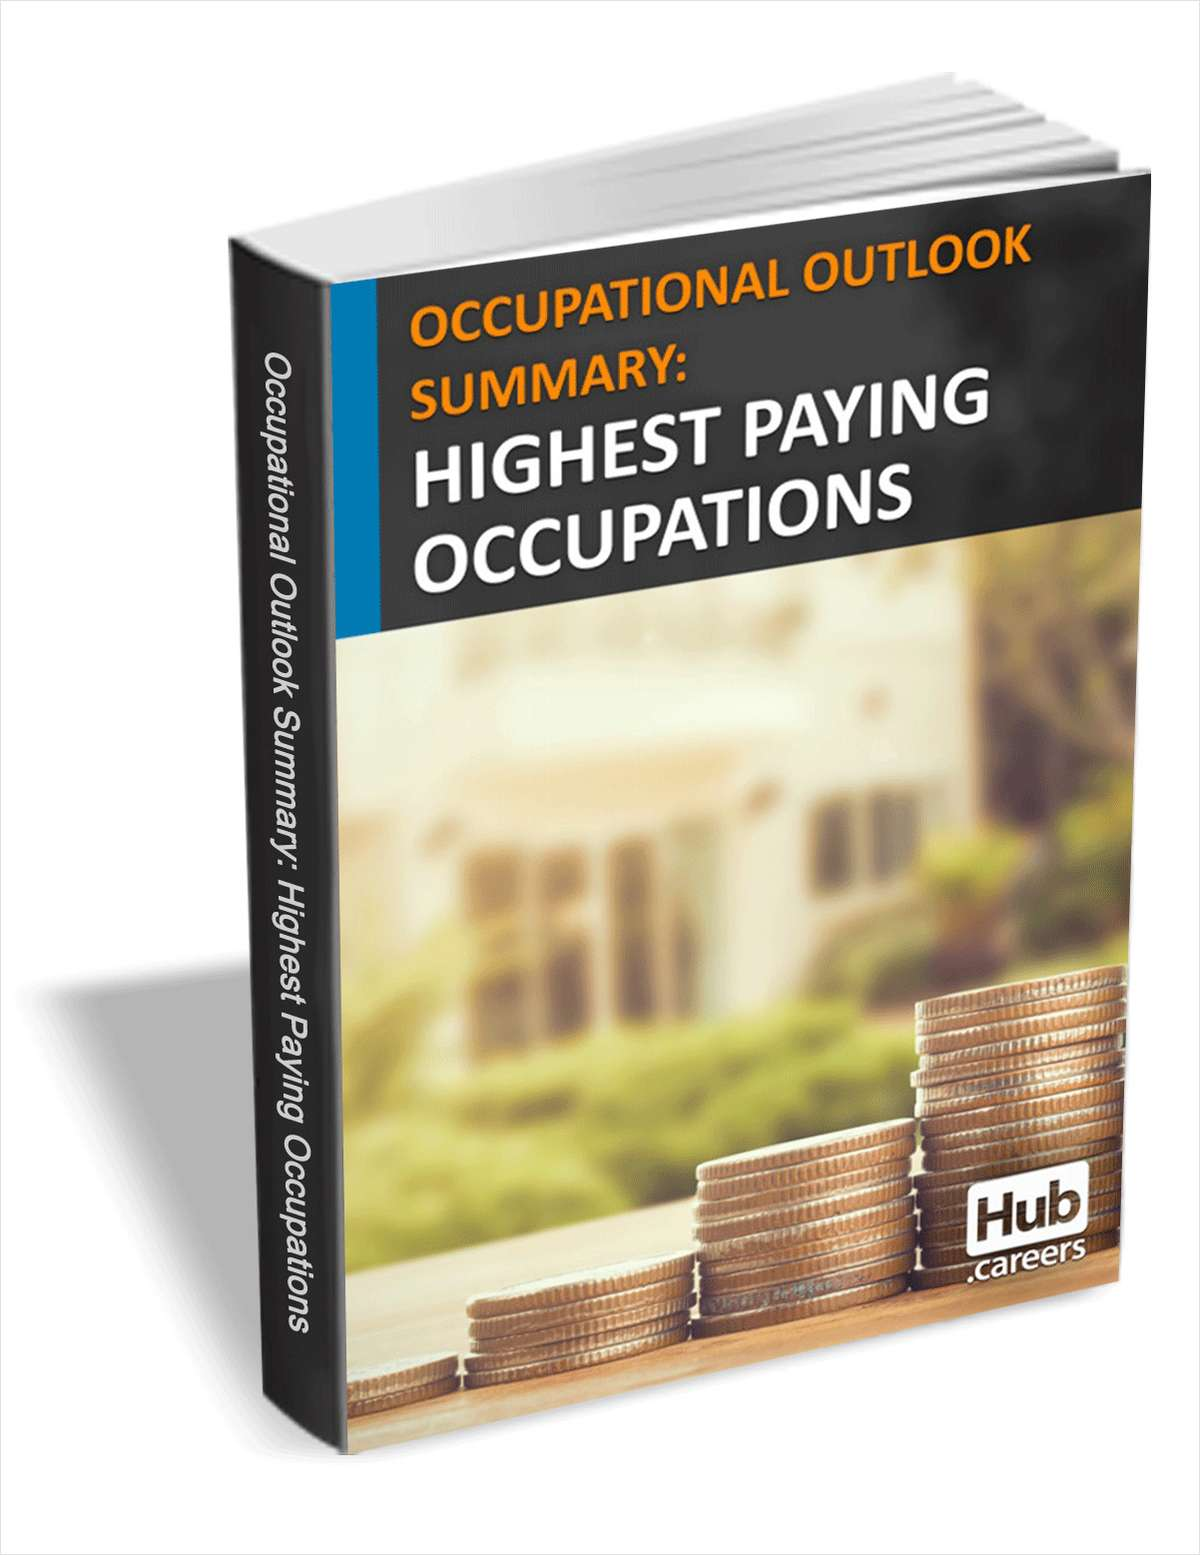 Highest Paying Occupations - Occupational Outlook